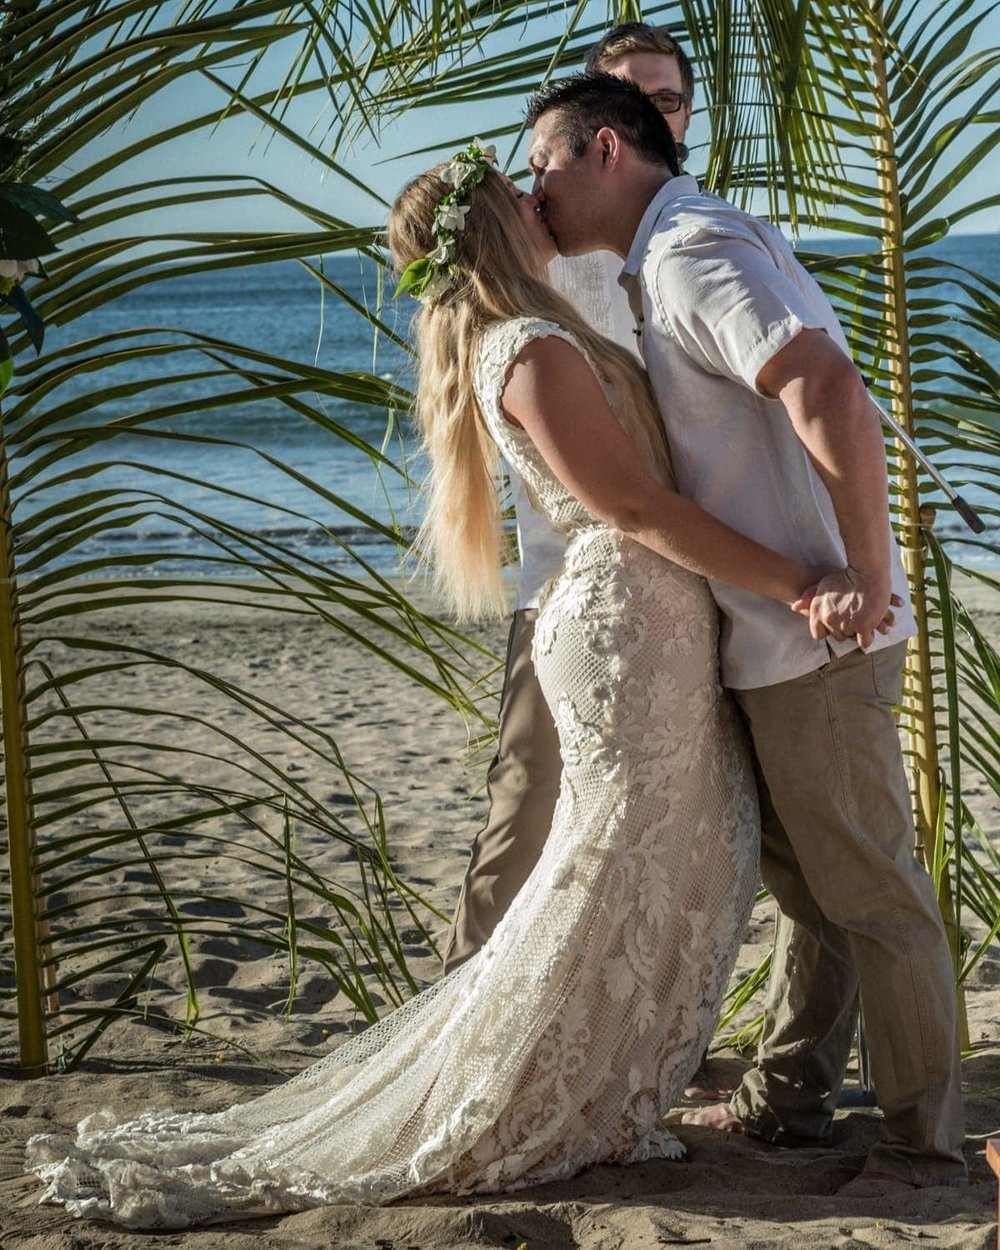 Bride and groom kiss after saying vows during breach wedding ceremony in Tamarindo.